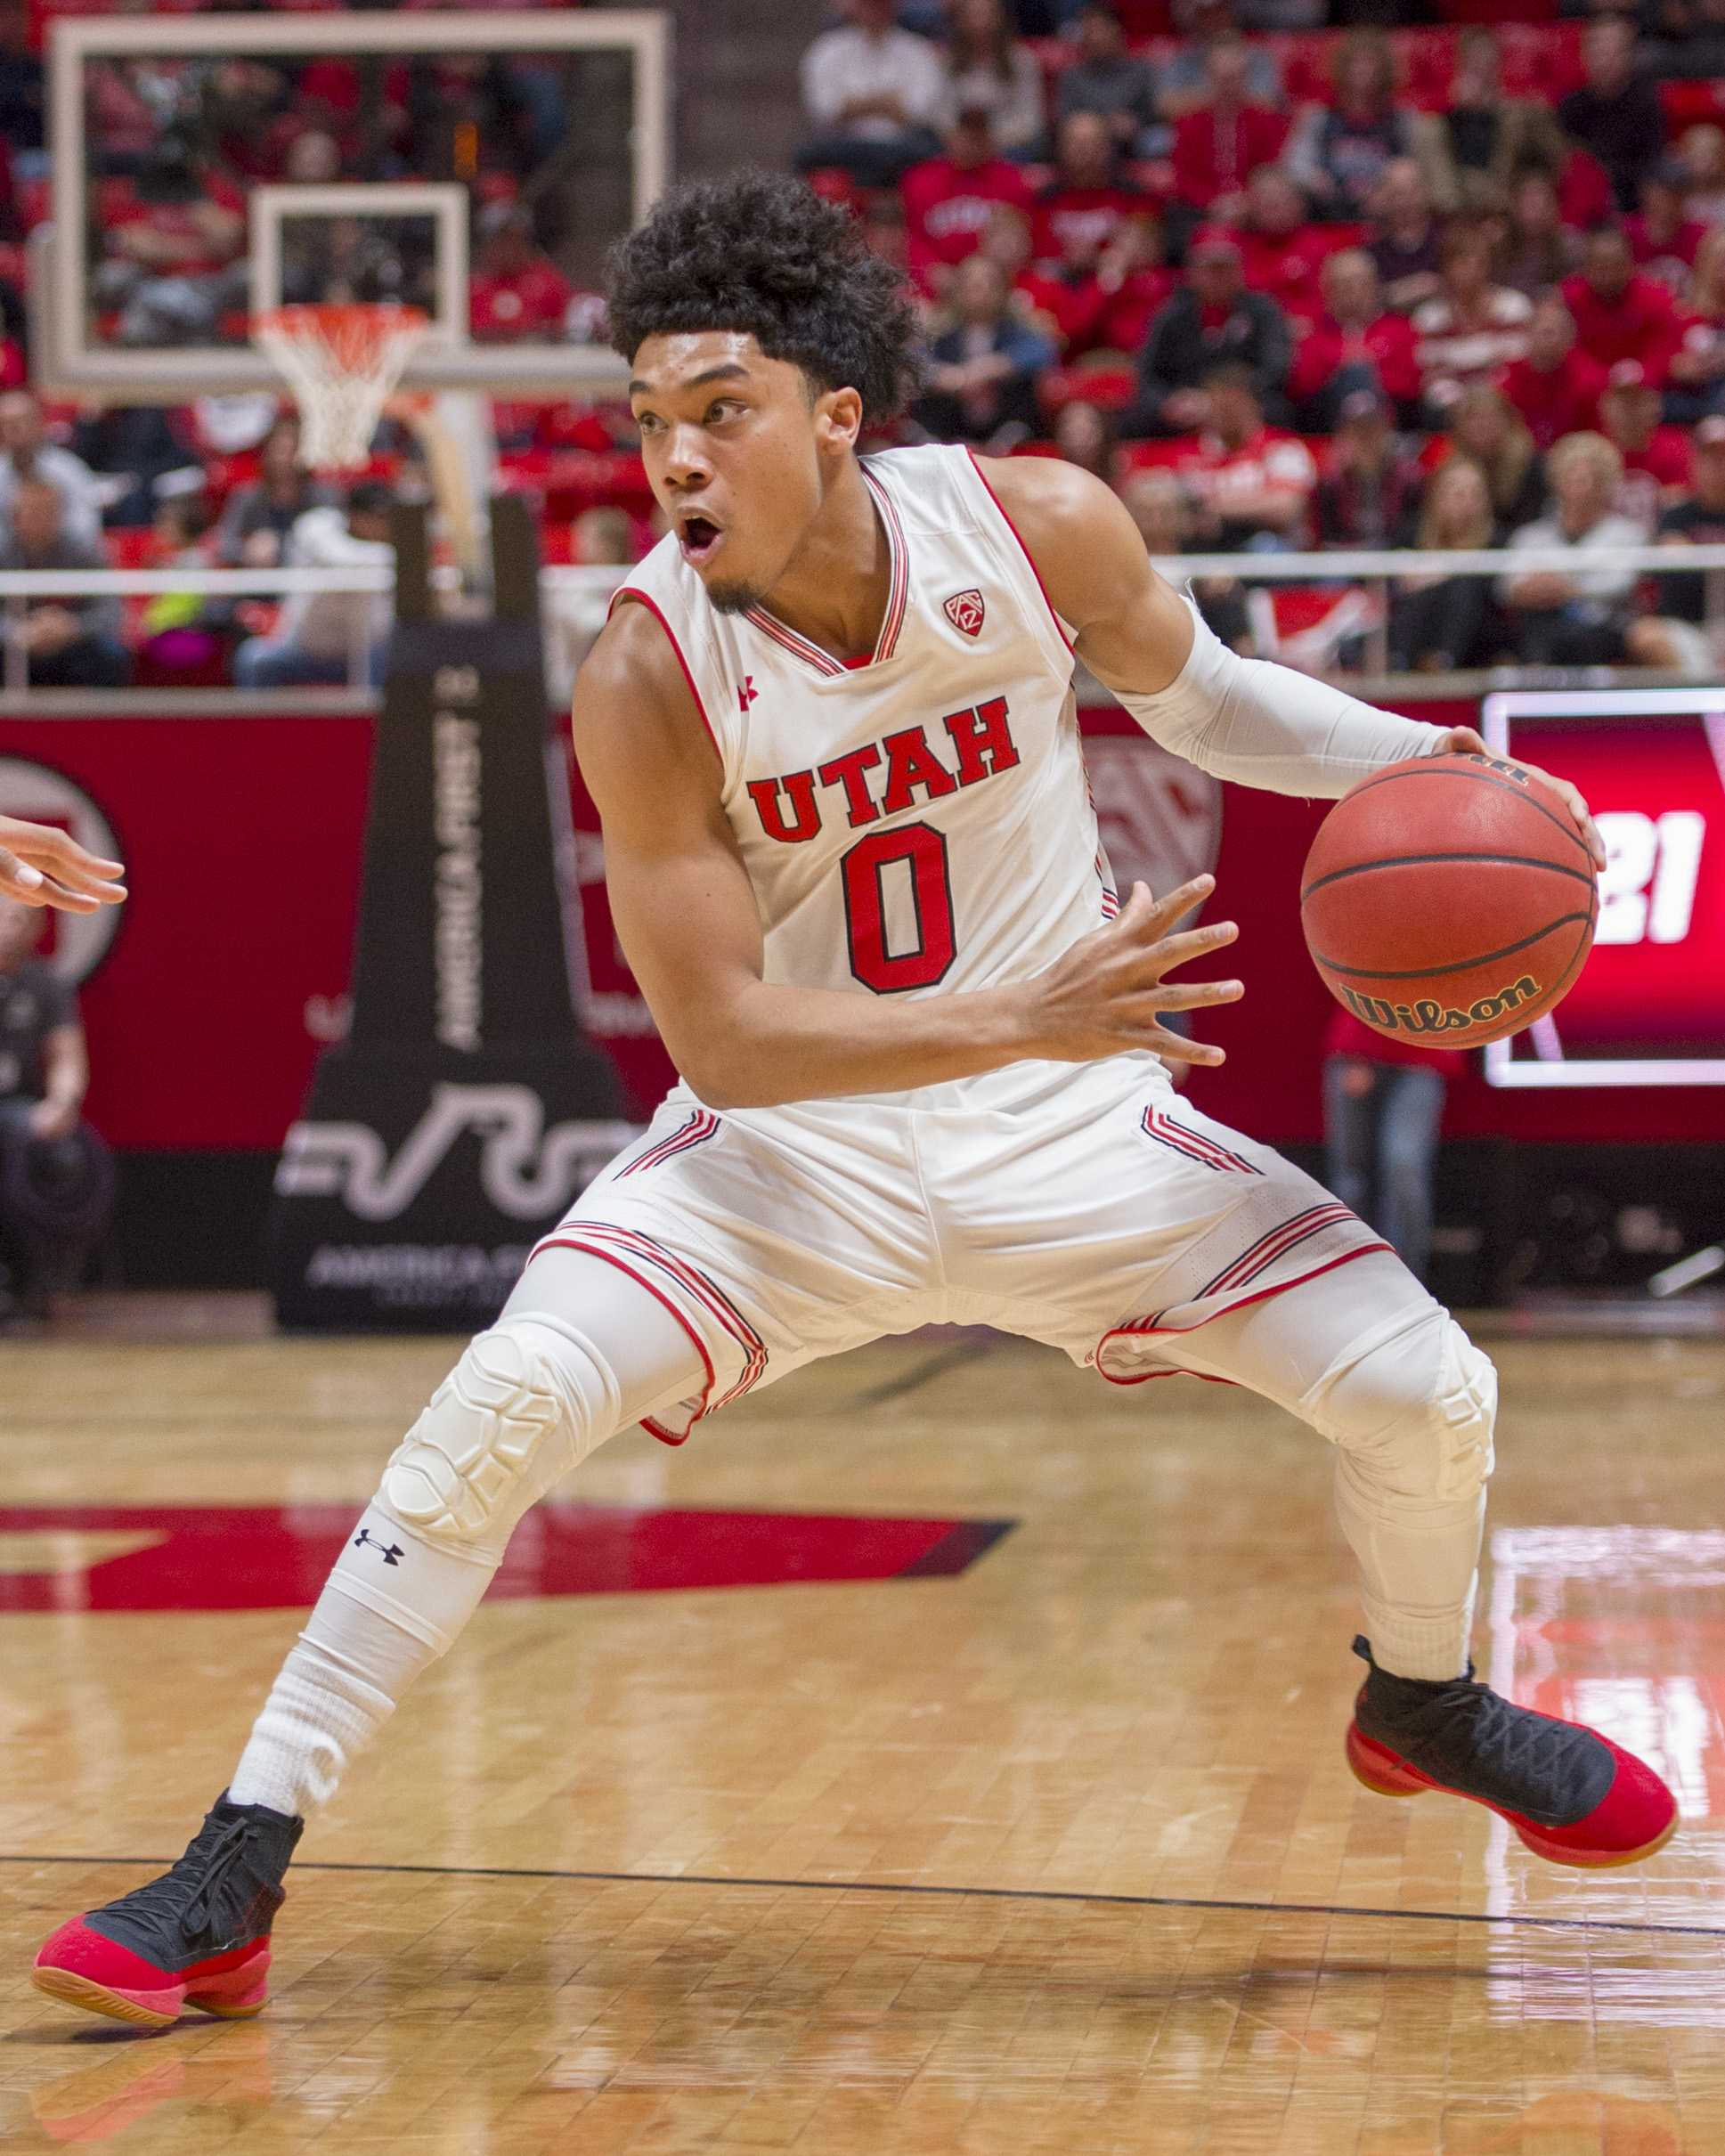 University of Utah junior guard Sedrick Barefield (0) dribbles the ball during an NCAA Basketball game vs. the University of Colorado Boulder at the Jon M. Huntsman Center in Salt Lake City, Utah on Saturday, March 3, 2018.  (Photo by Kiffer Creveling | The Daily Utah Chronicle)